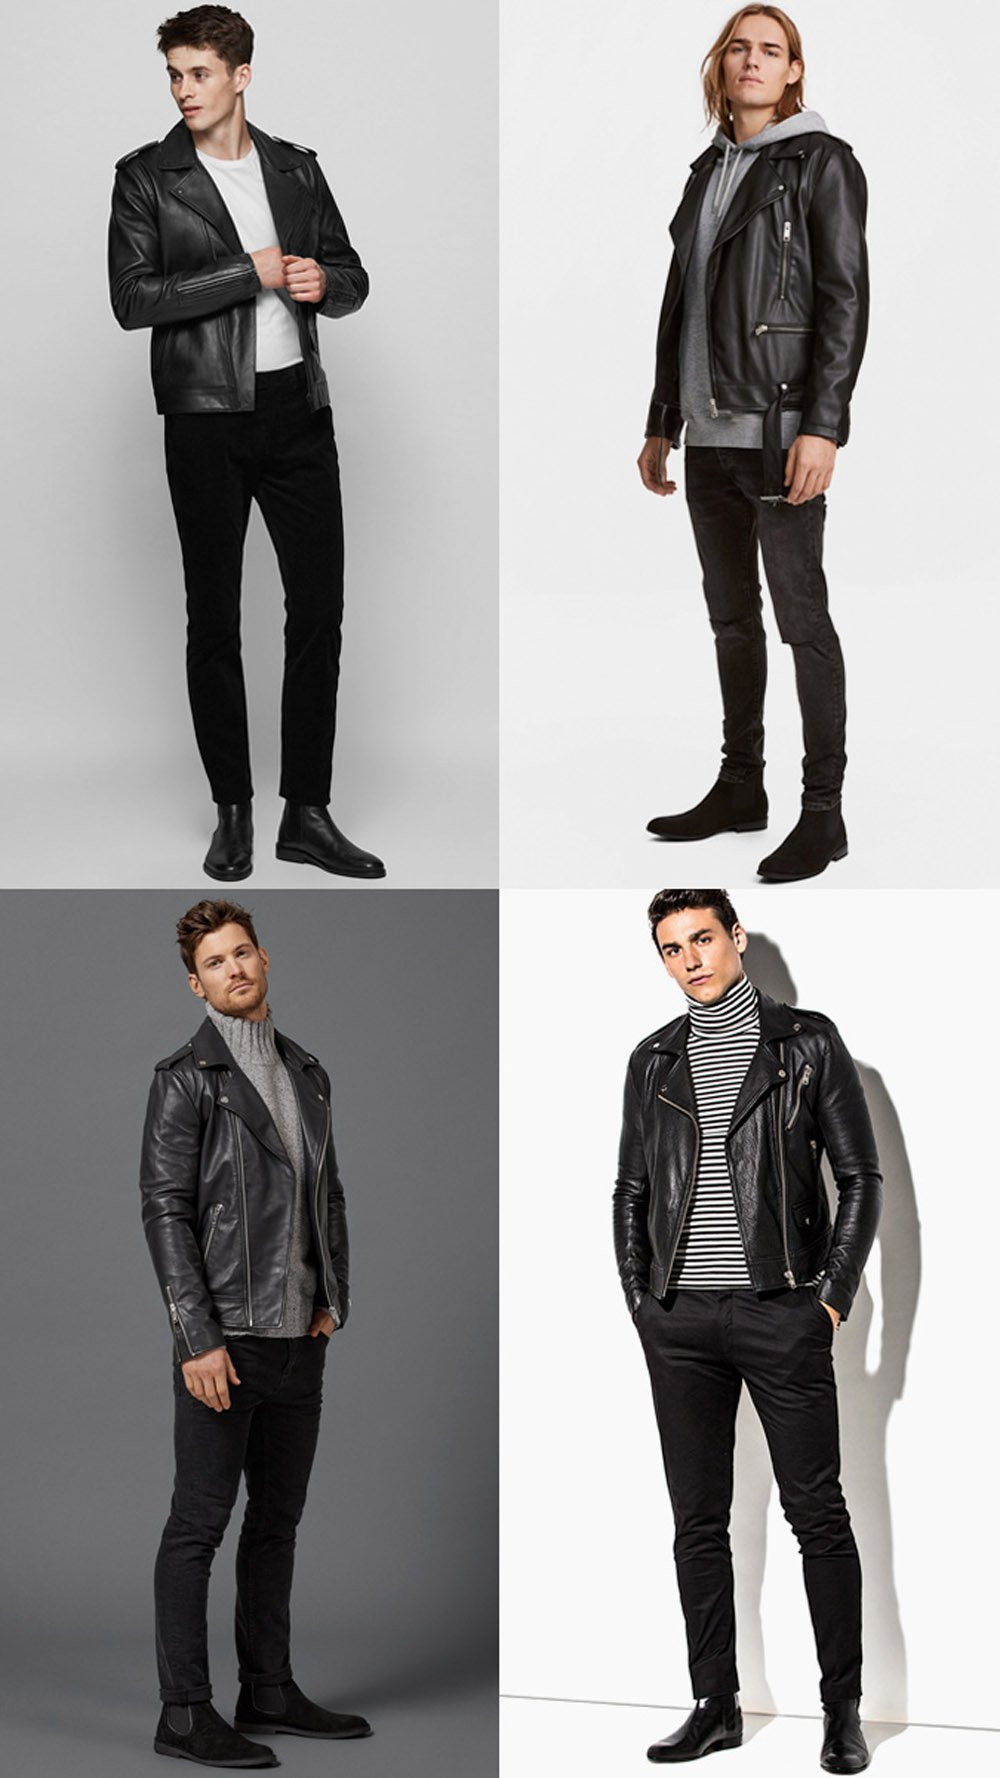 awww.arrajol.com_sites_default_files_2018_03_16_181921_Leather_20Jacket_20.